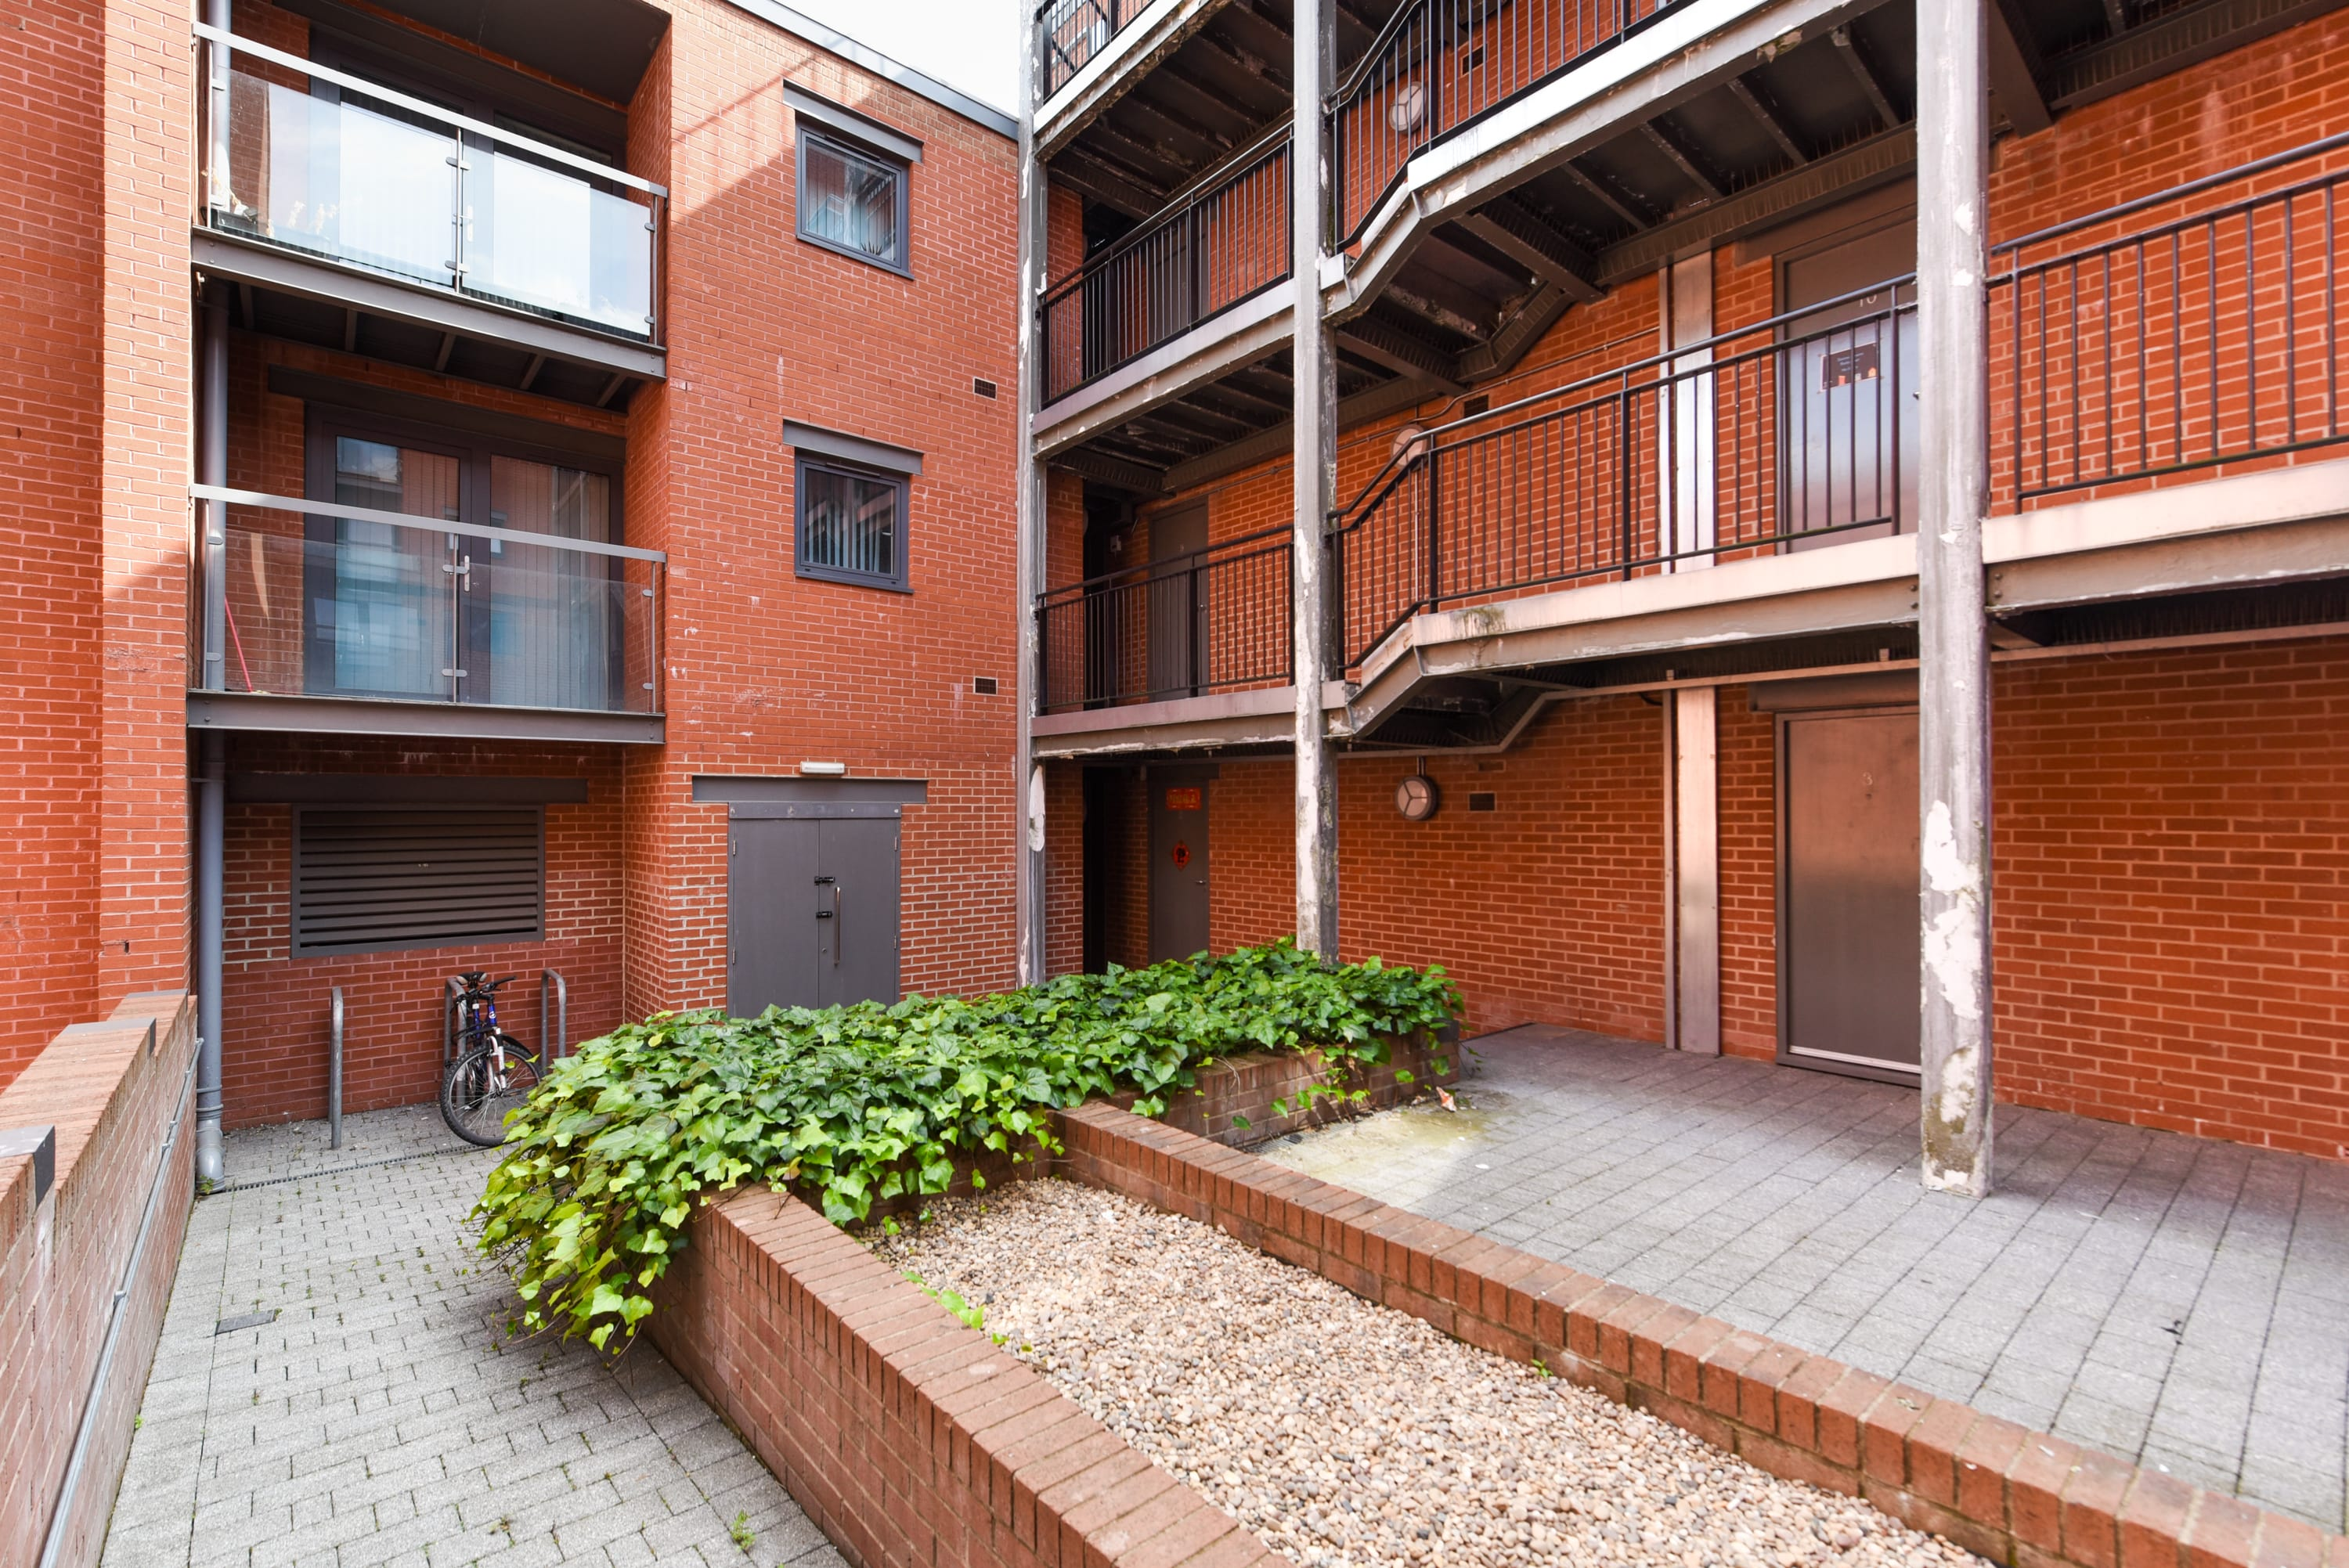 Mellor-House-Sheffield-2-Courtyard-Unilodgers